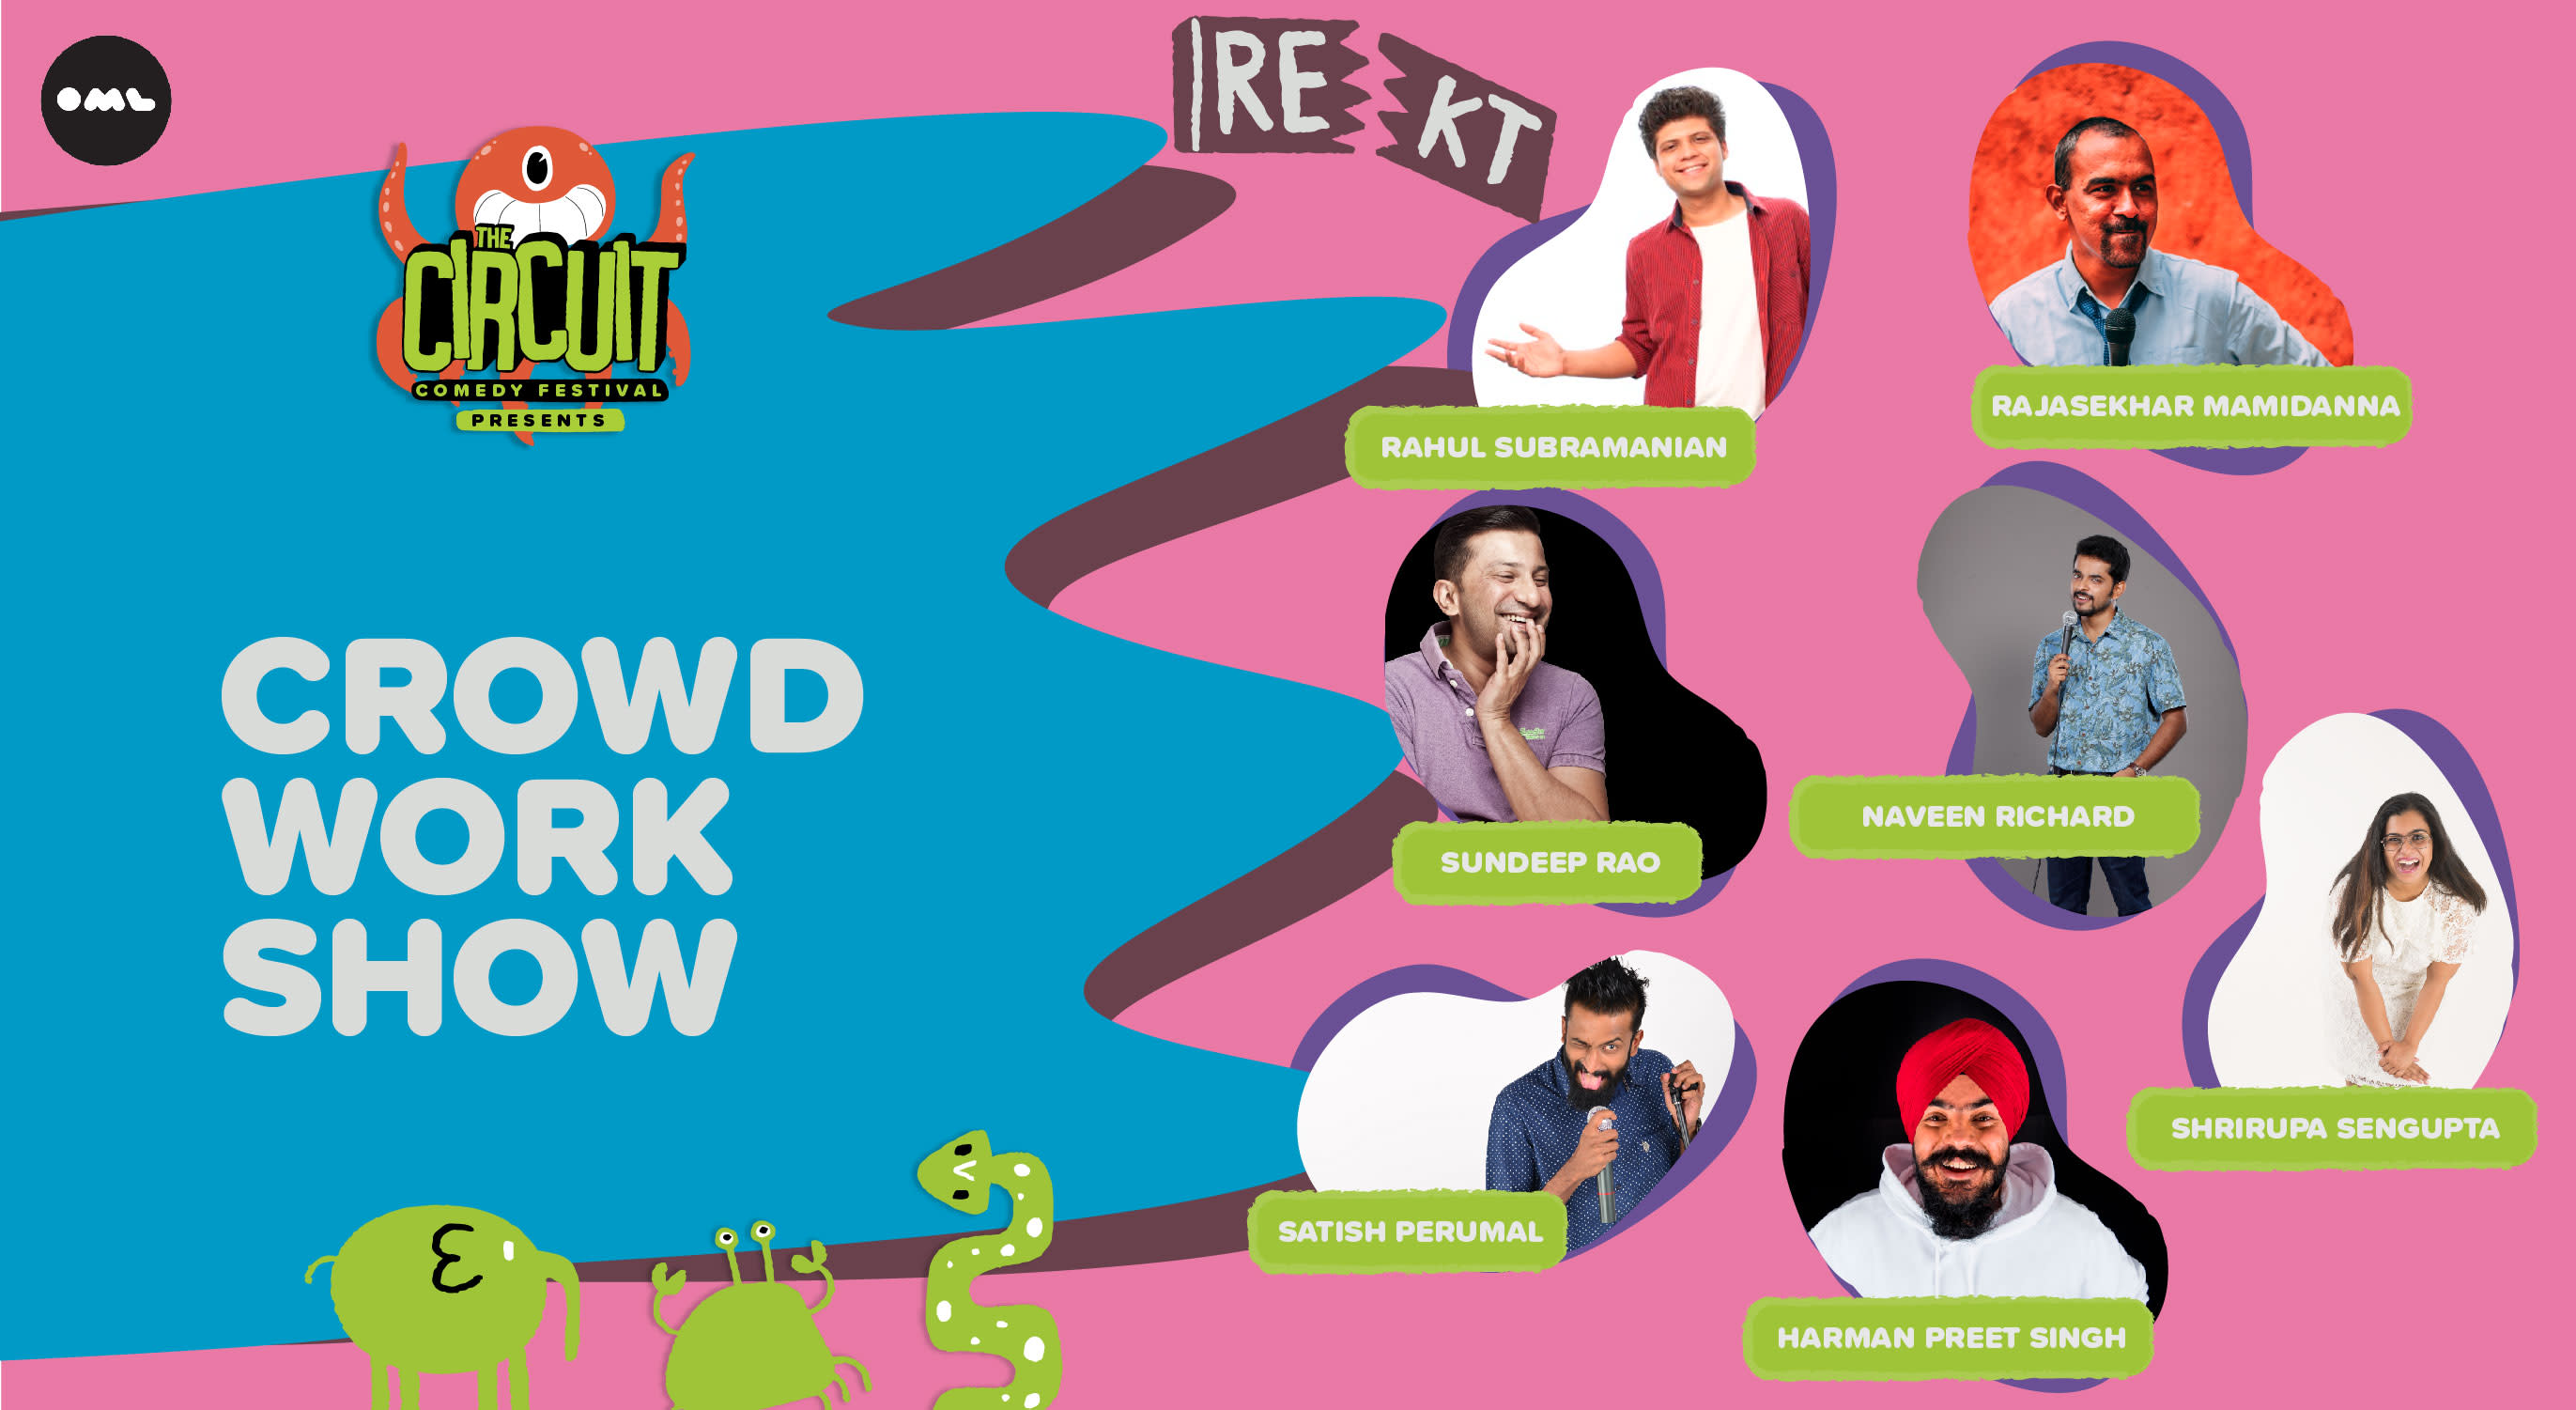 Crowd Work Show | The Circuit Comedy Festival, Bengaluru